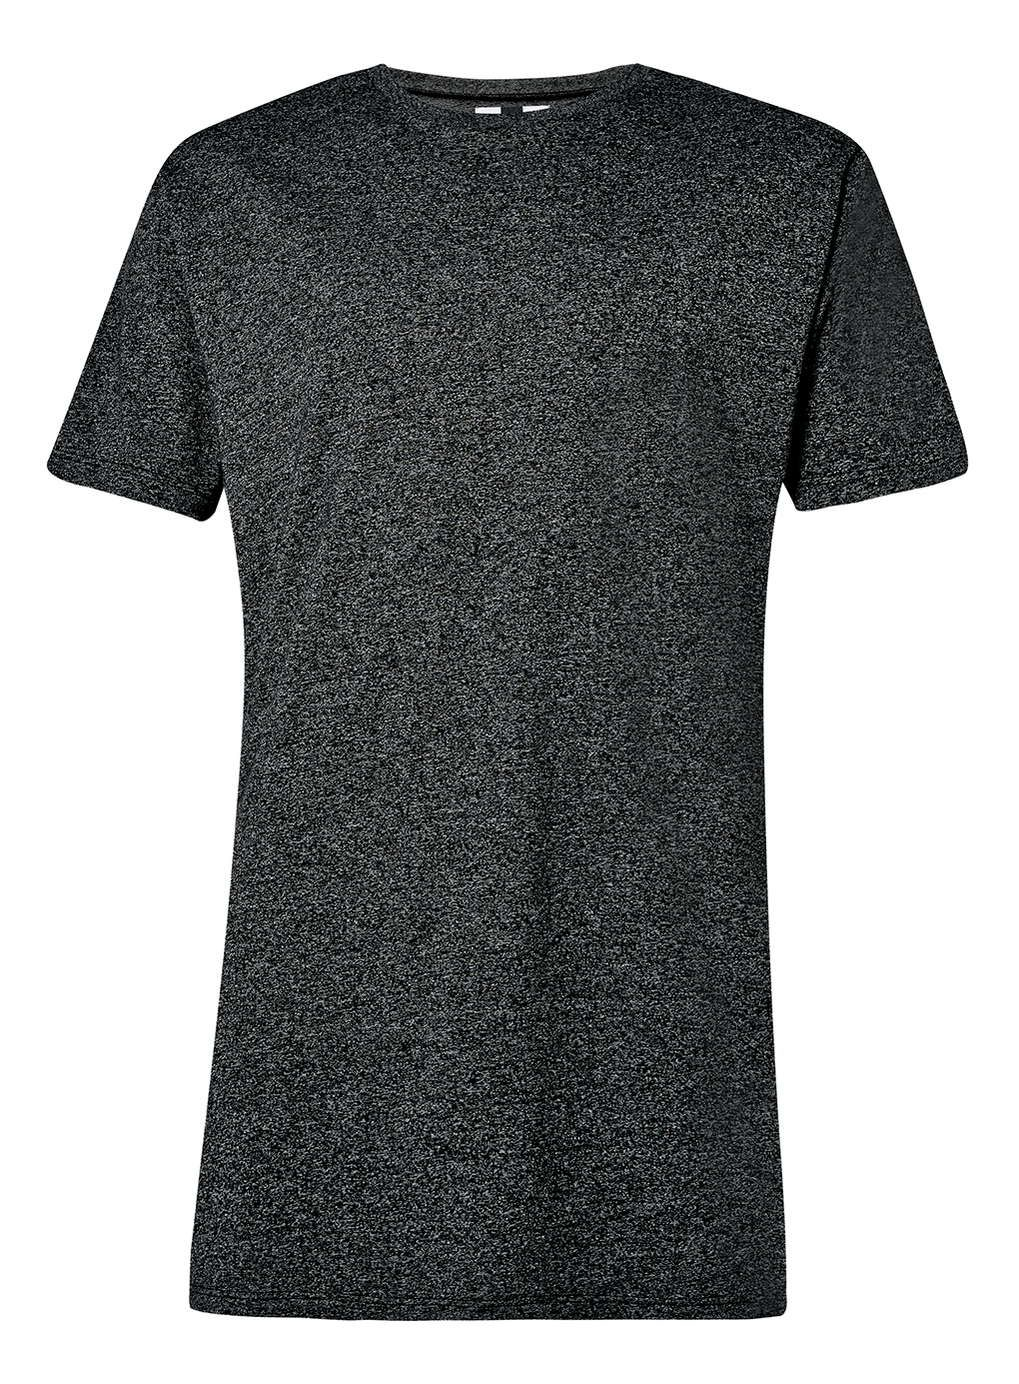 topman long line t shirt in gray for men lyst. Black Bedroom Furniture Sets. Home Design Ideas